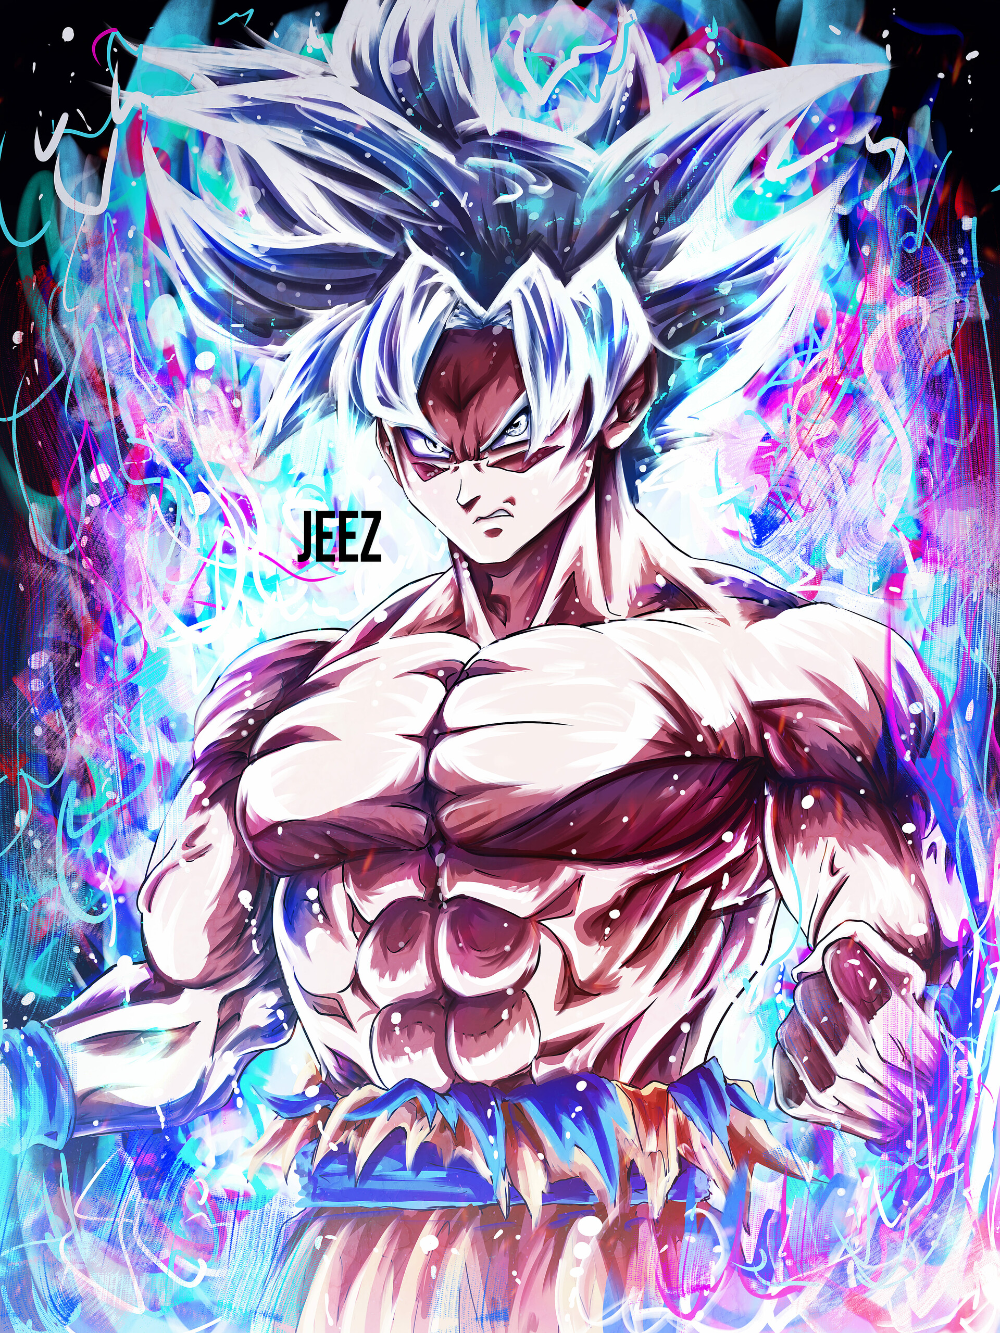 Artstation Mastered Ultra Instinct Goku Jeez Art In 2020 Dragon Ball Wallpaper Iphone Anime Dragon Ball Super Dragon Ball Painting